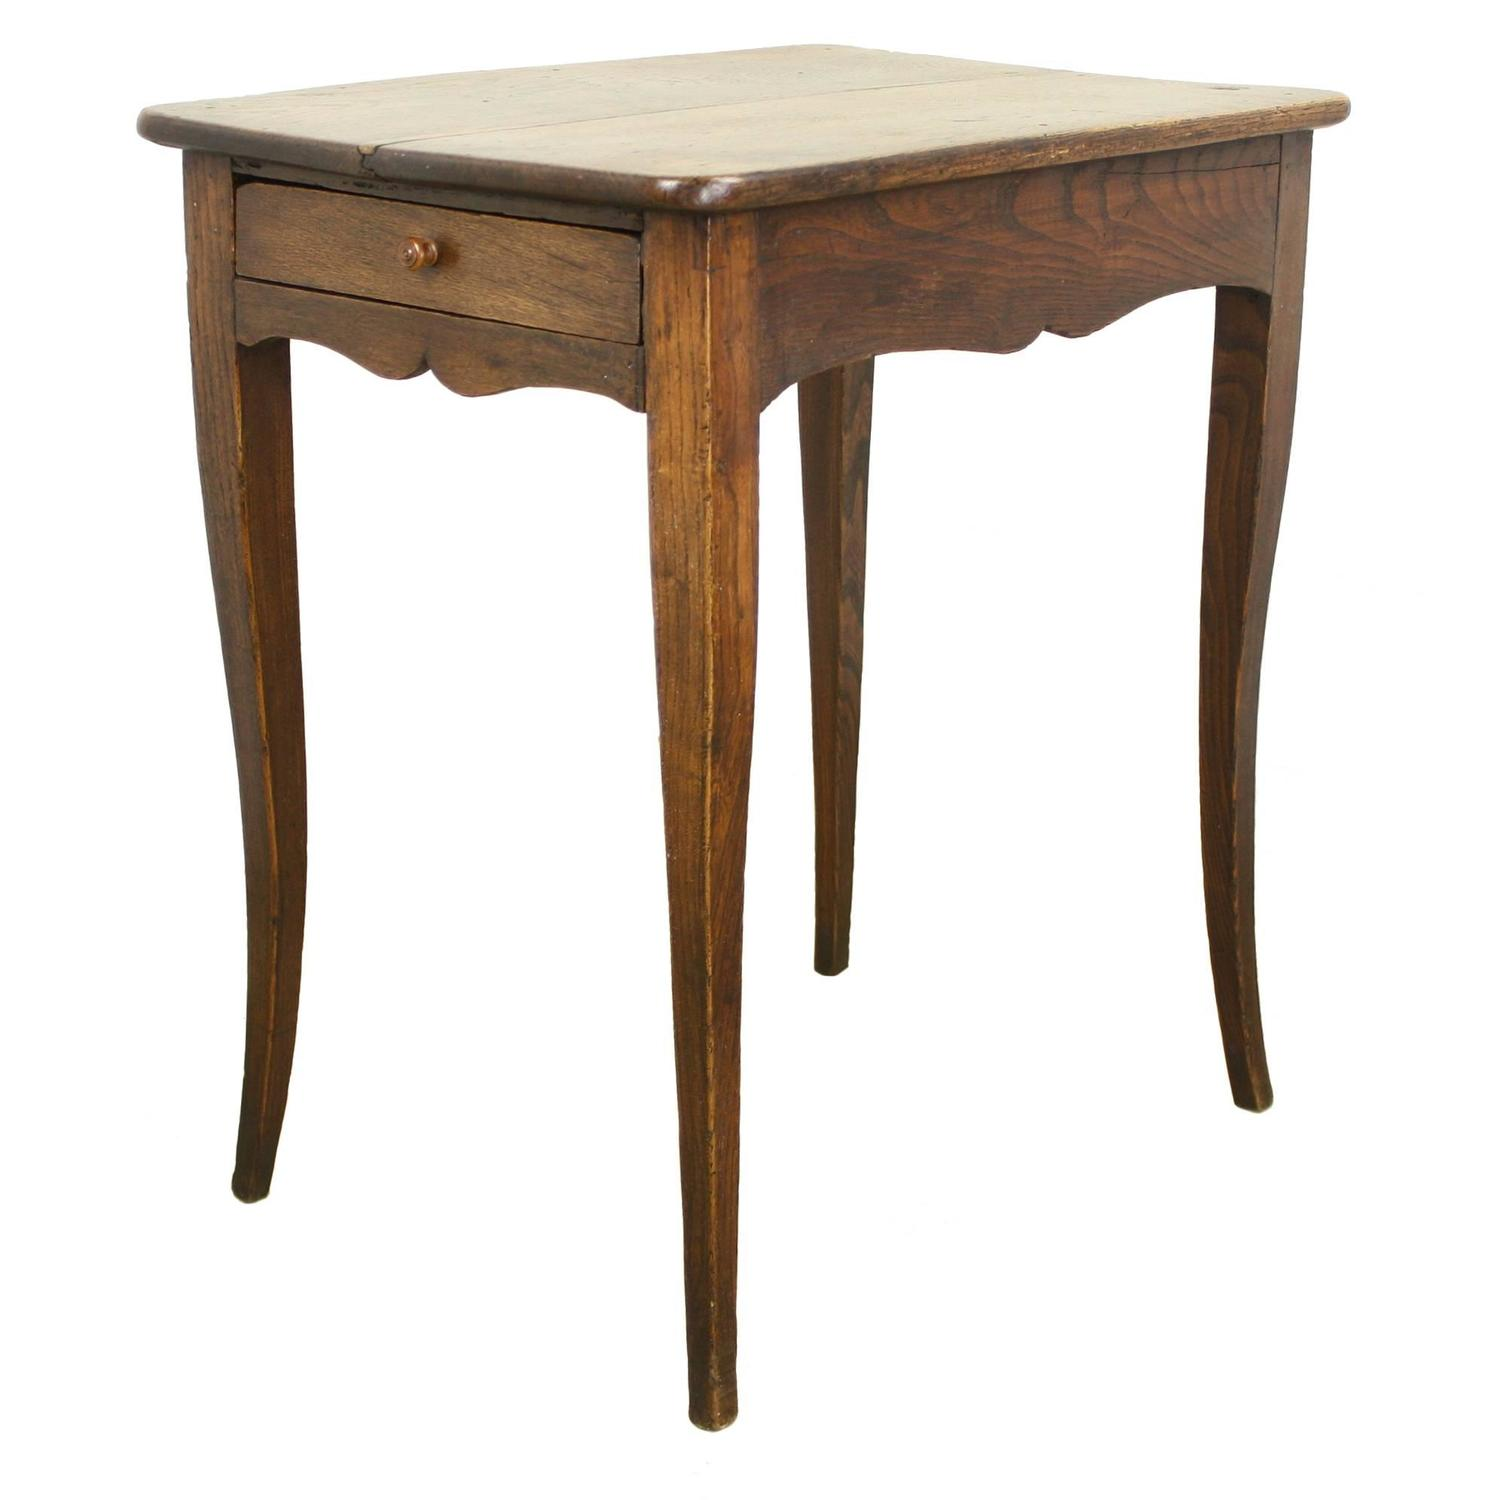 Antique louis xv end table at 1stdibs - Table louis xv ...